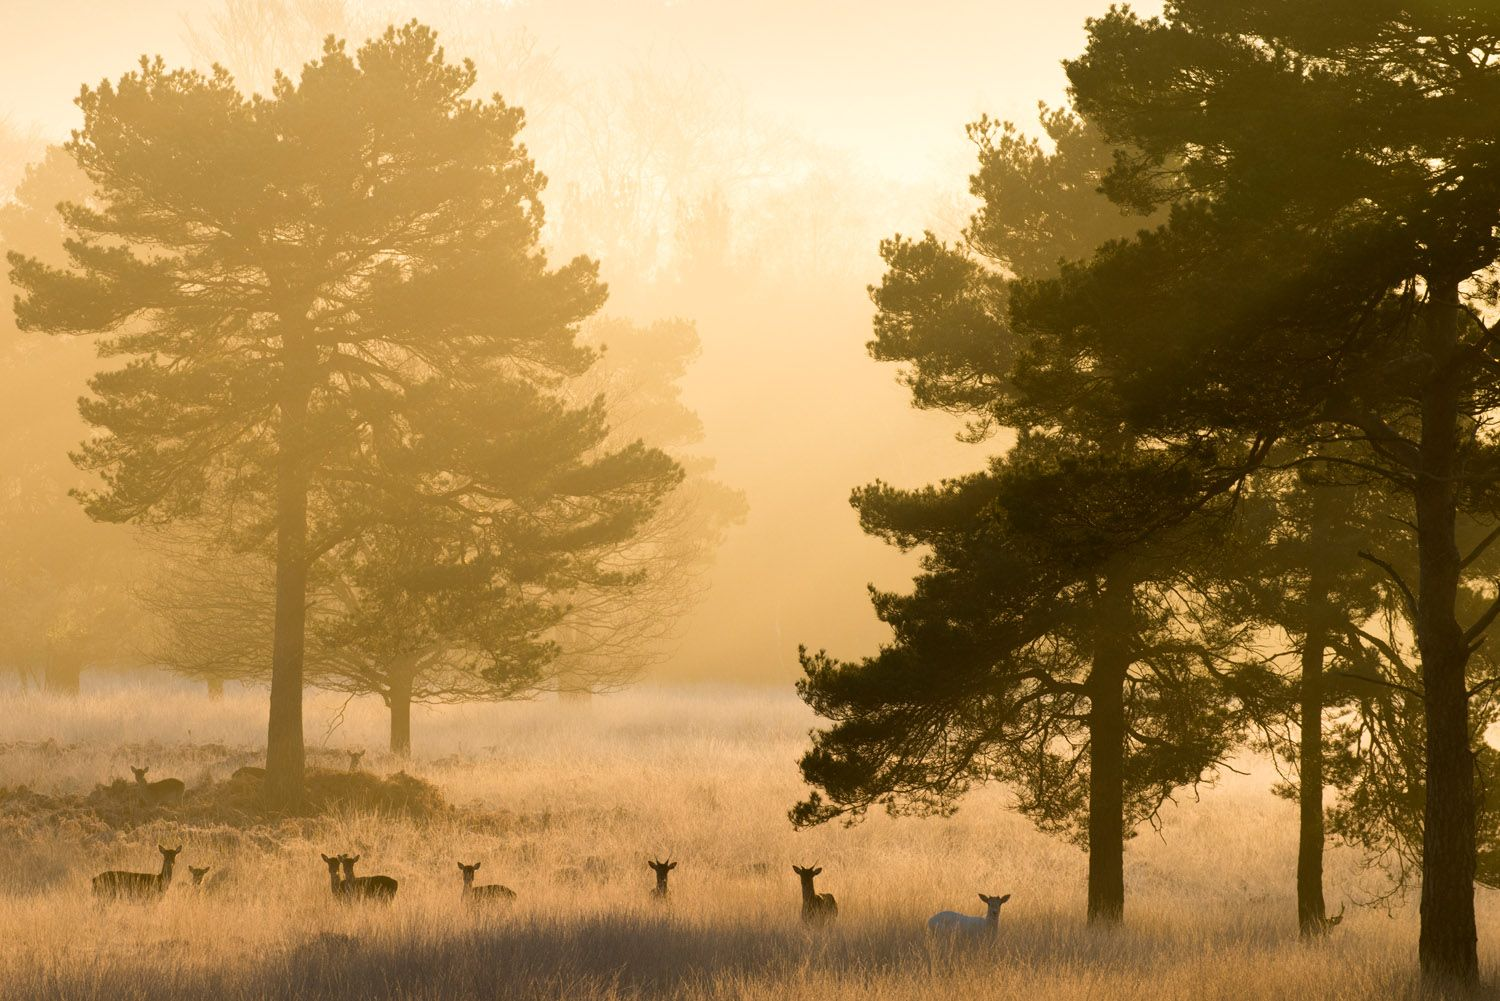 10 Fallow Deer And Scots Pines At Dawn Ashdown Forest Sussex Weald England Nature Photography Wildlife Photography Wildlife Pictures Dawn forest deer trees fog nature